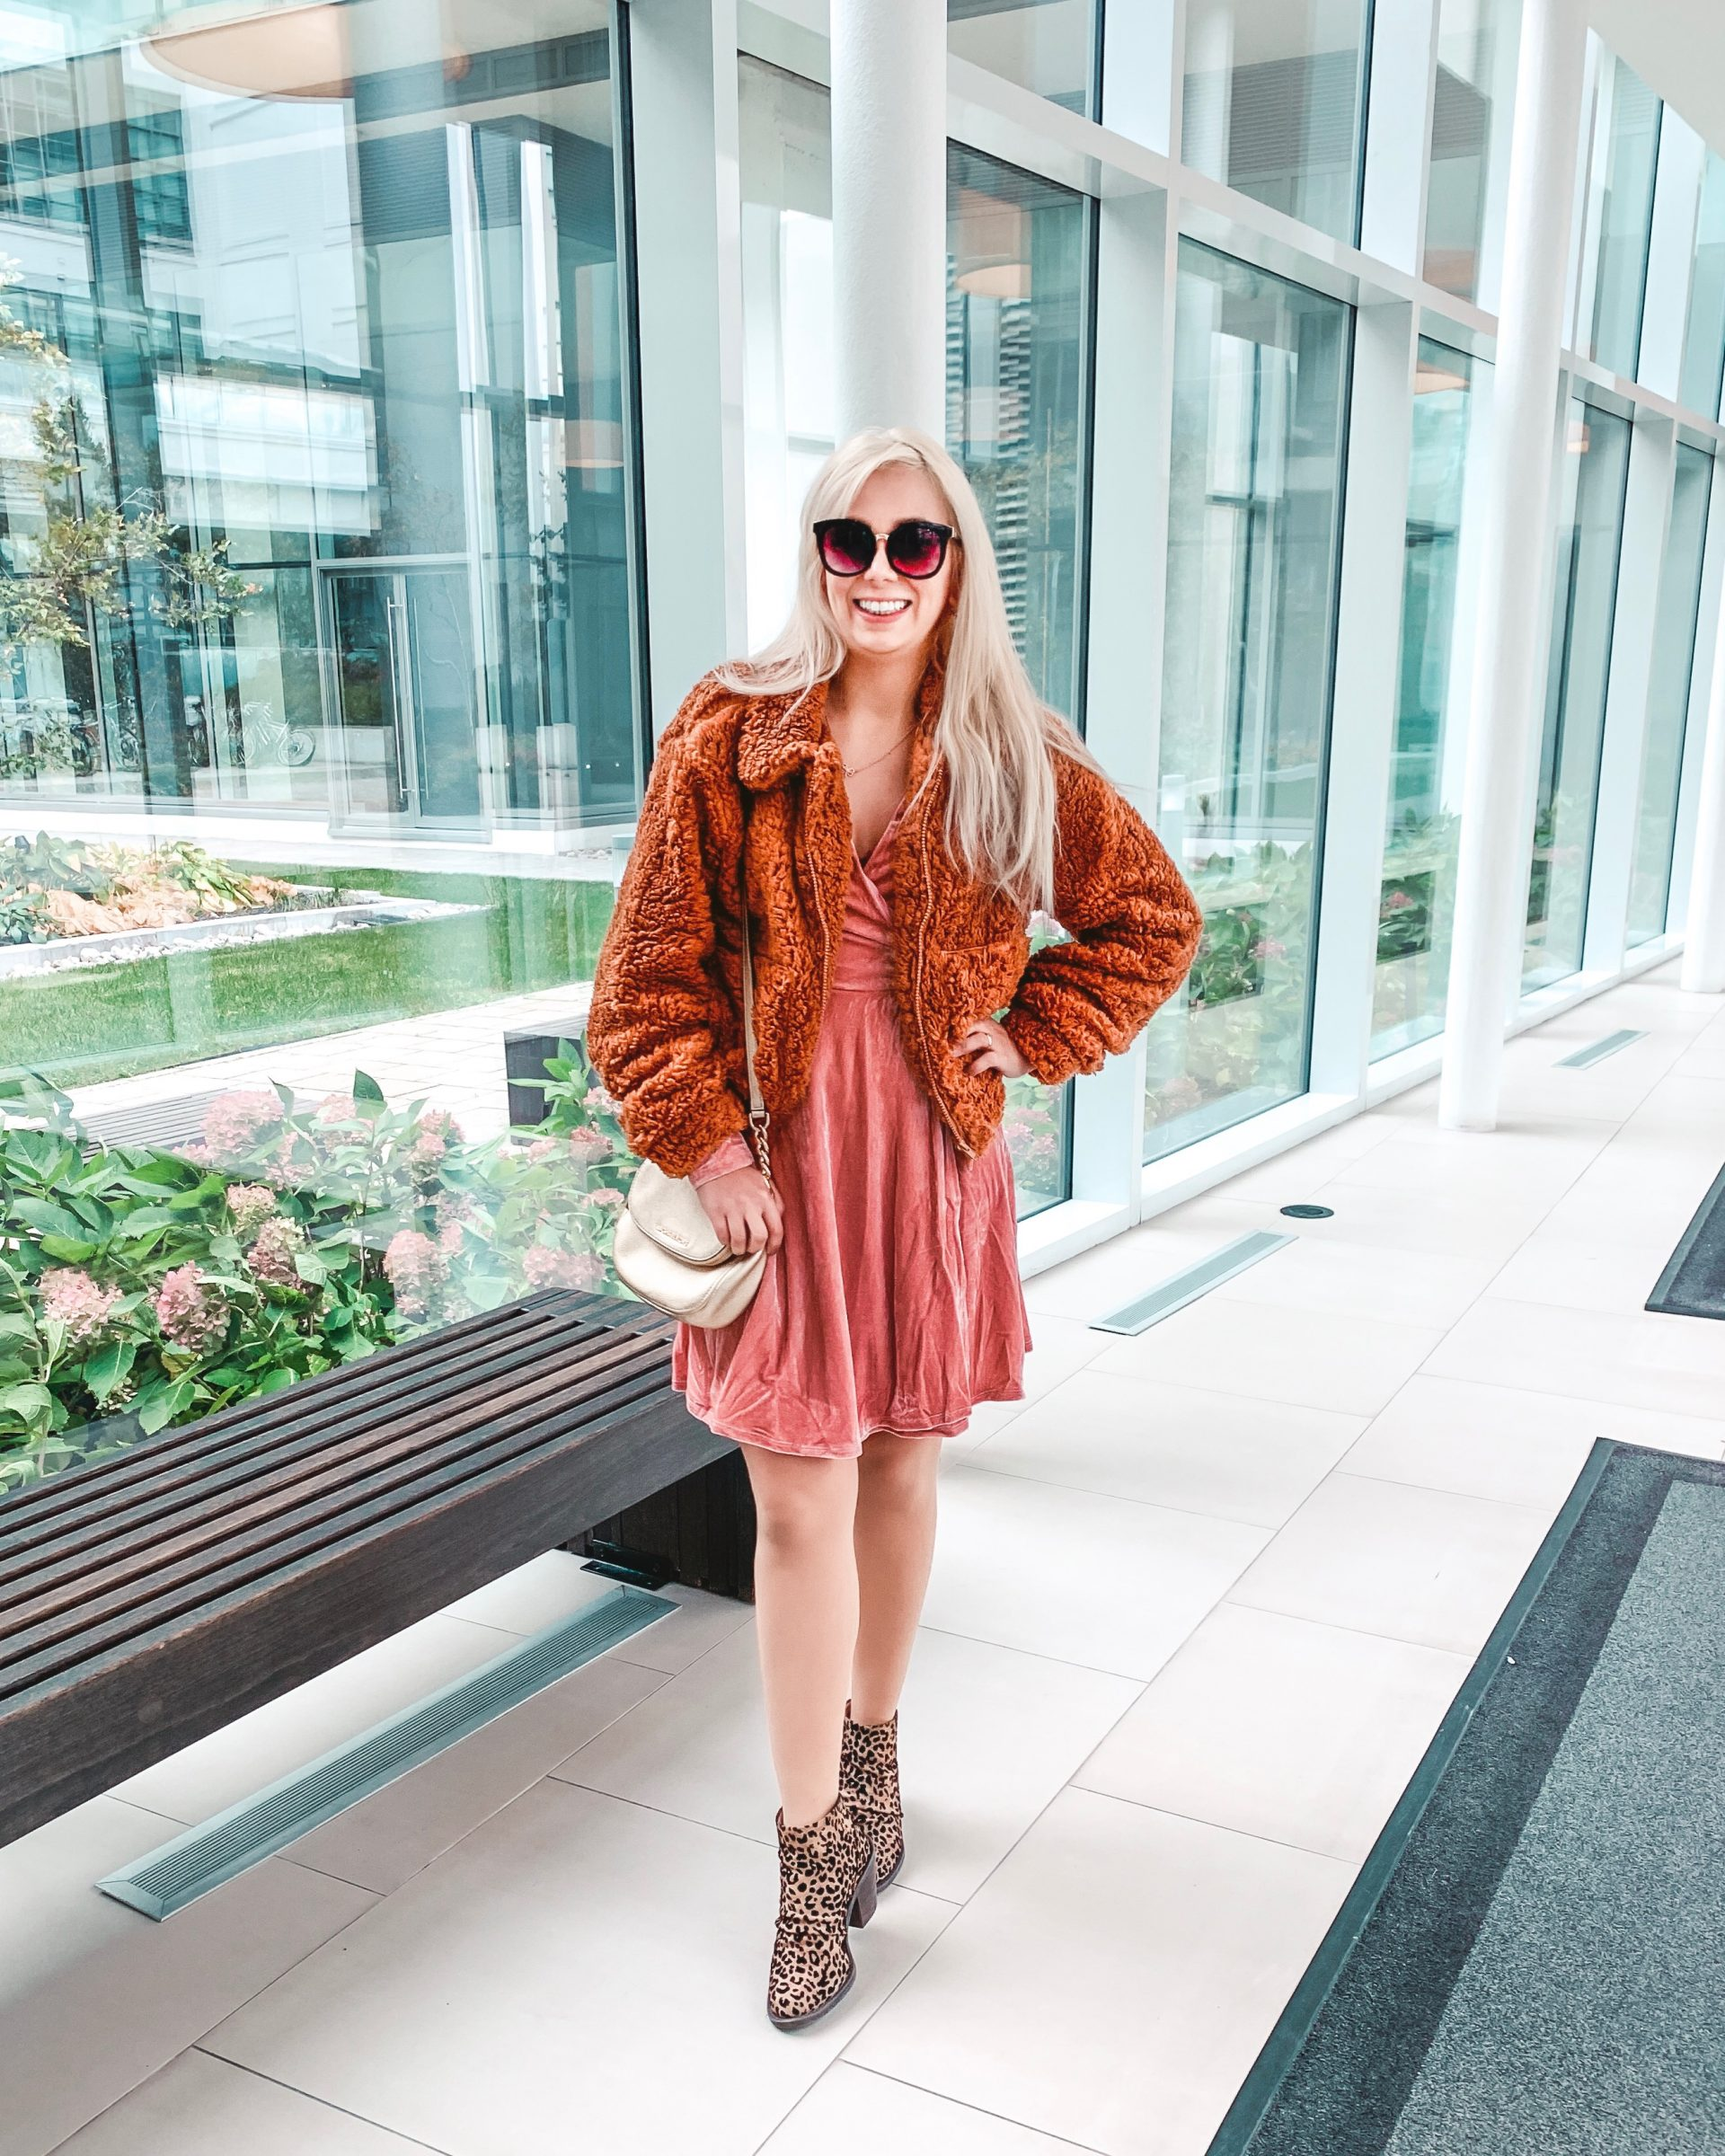 What I wore: teddy bear jacket